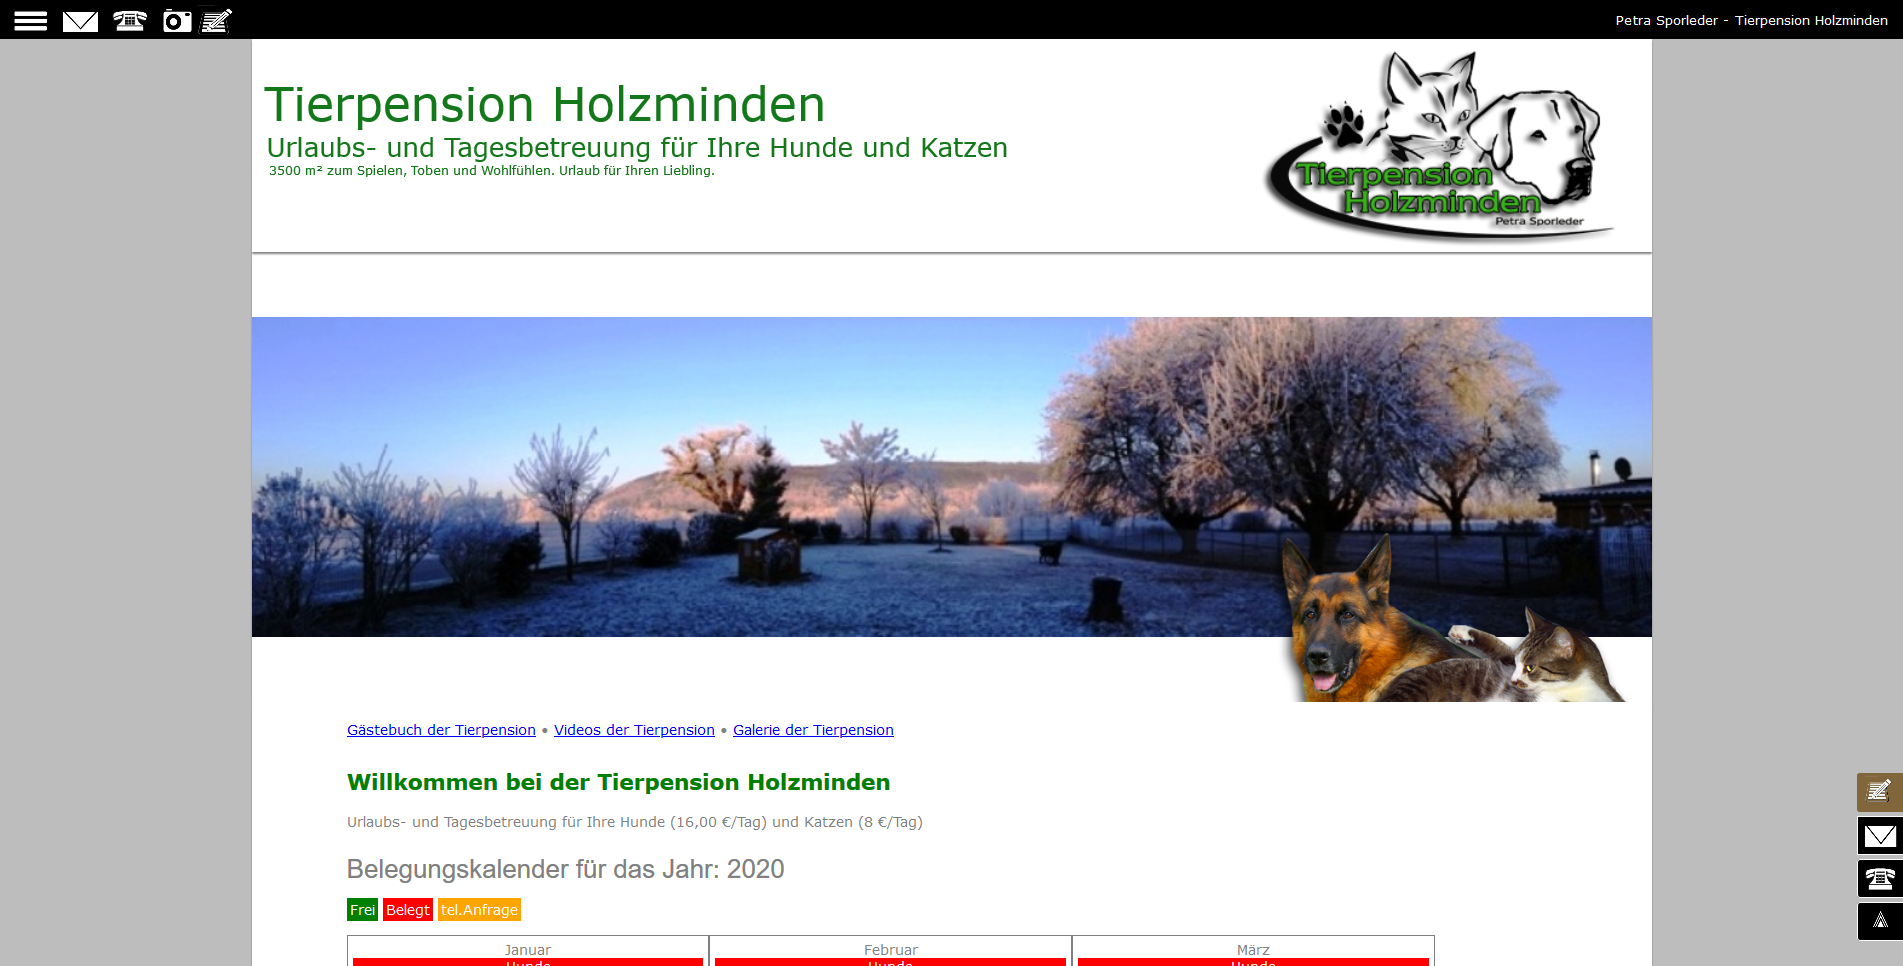 Tierpension Holzminden